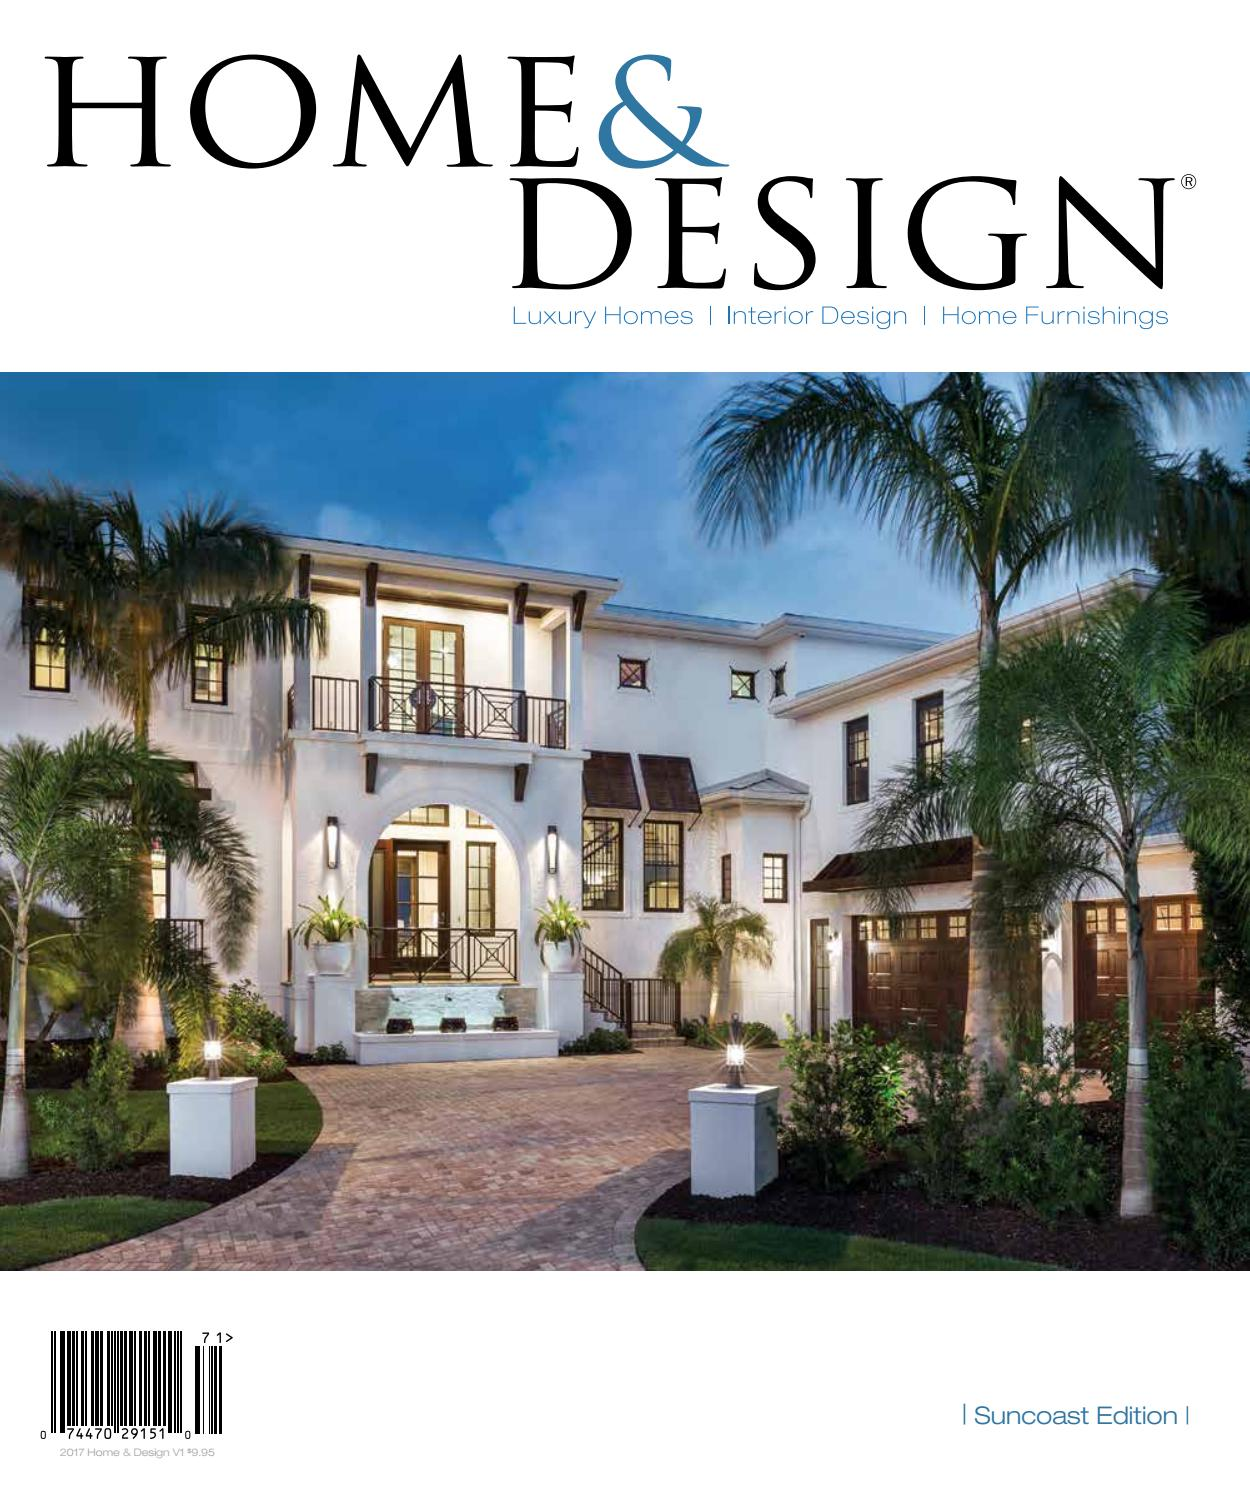 Home Design Magazine 2017 Suncoast Florida Edition By Jennifer Evans Issuu